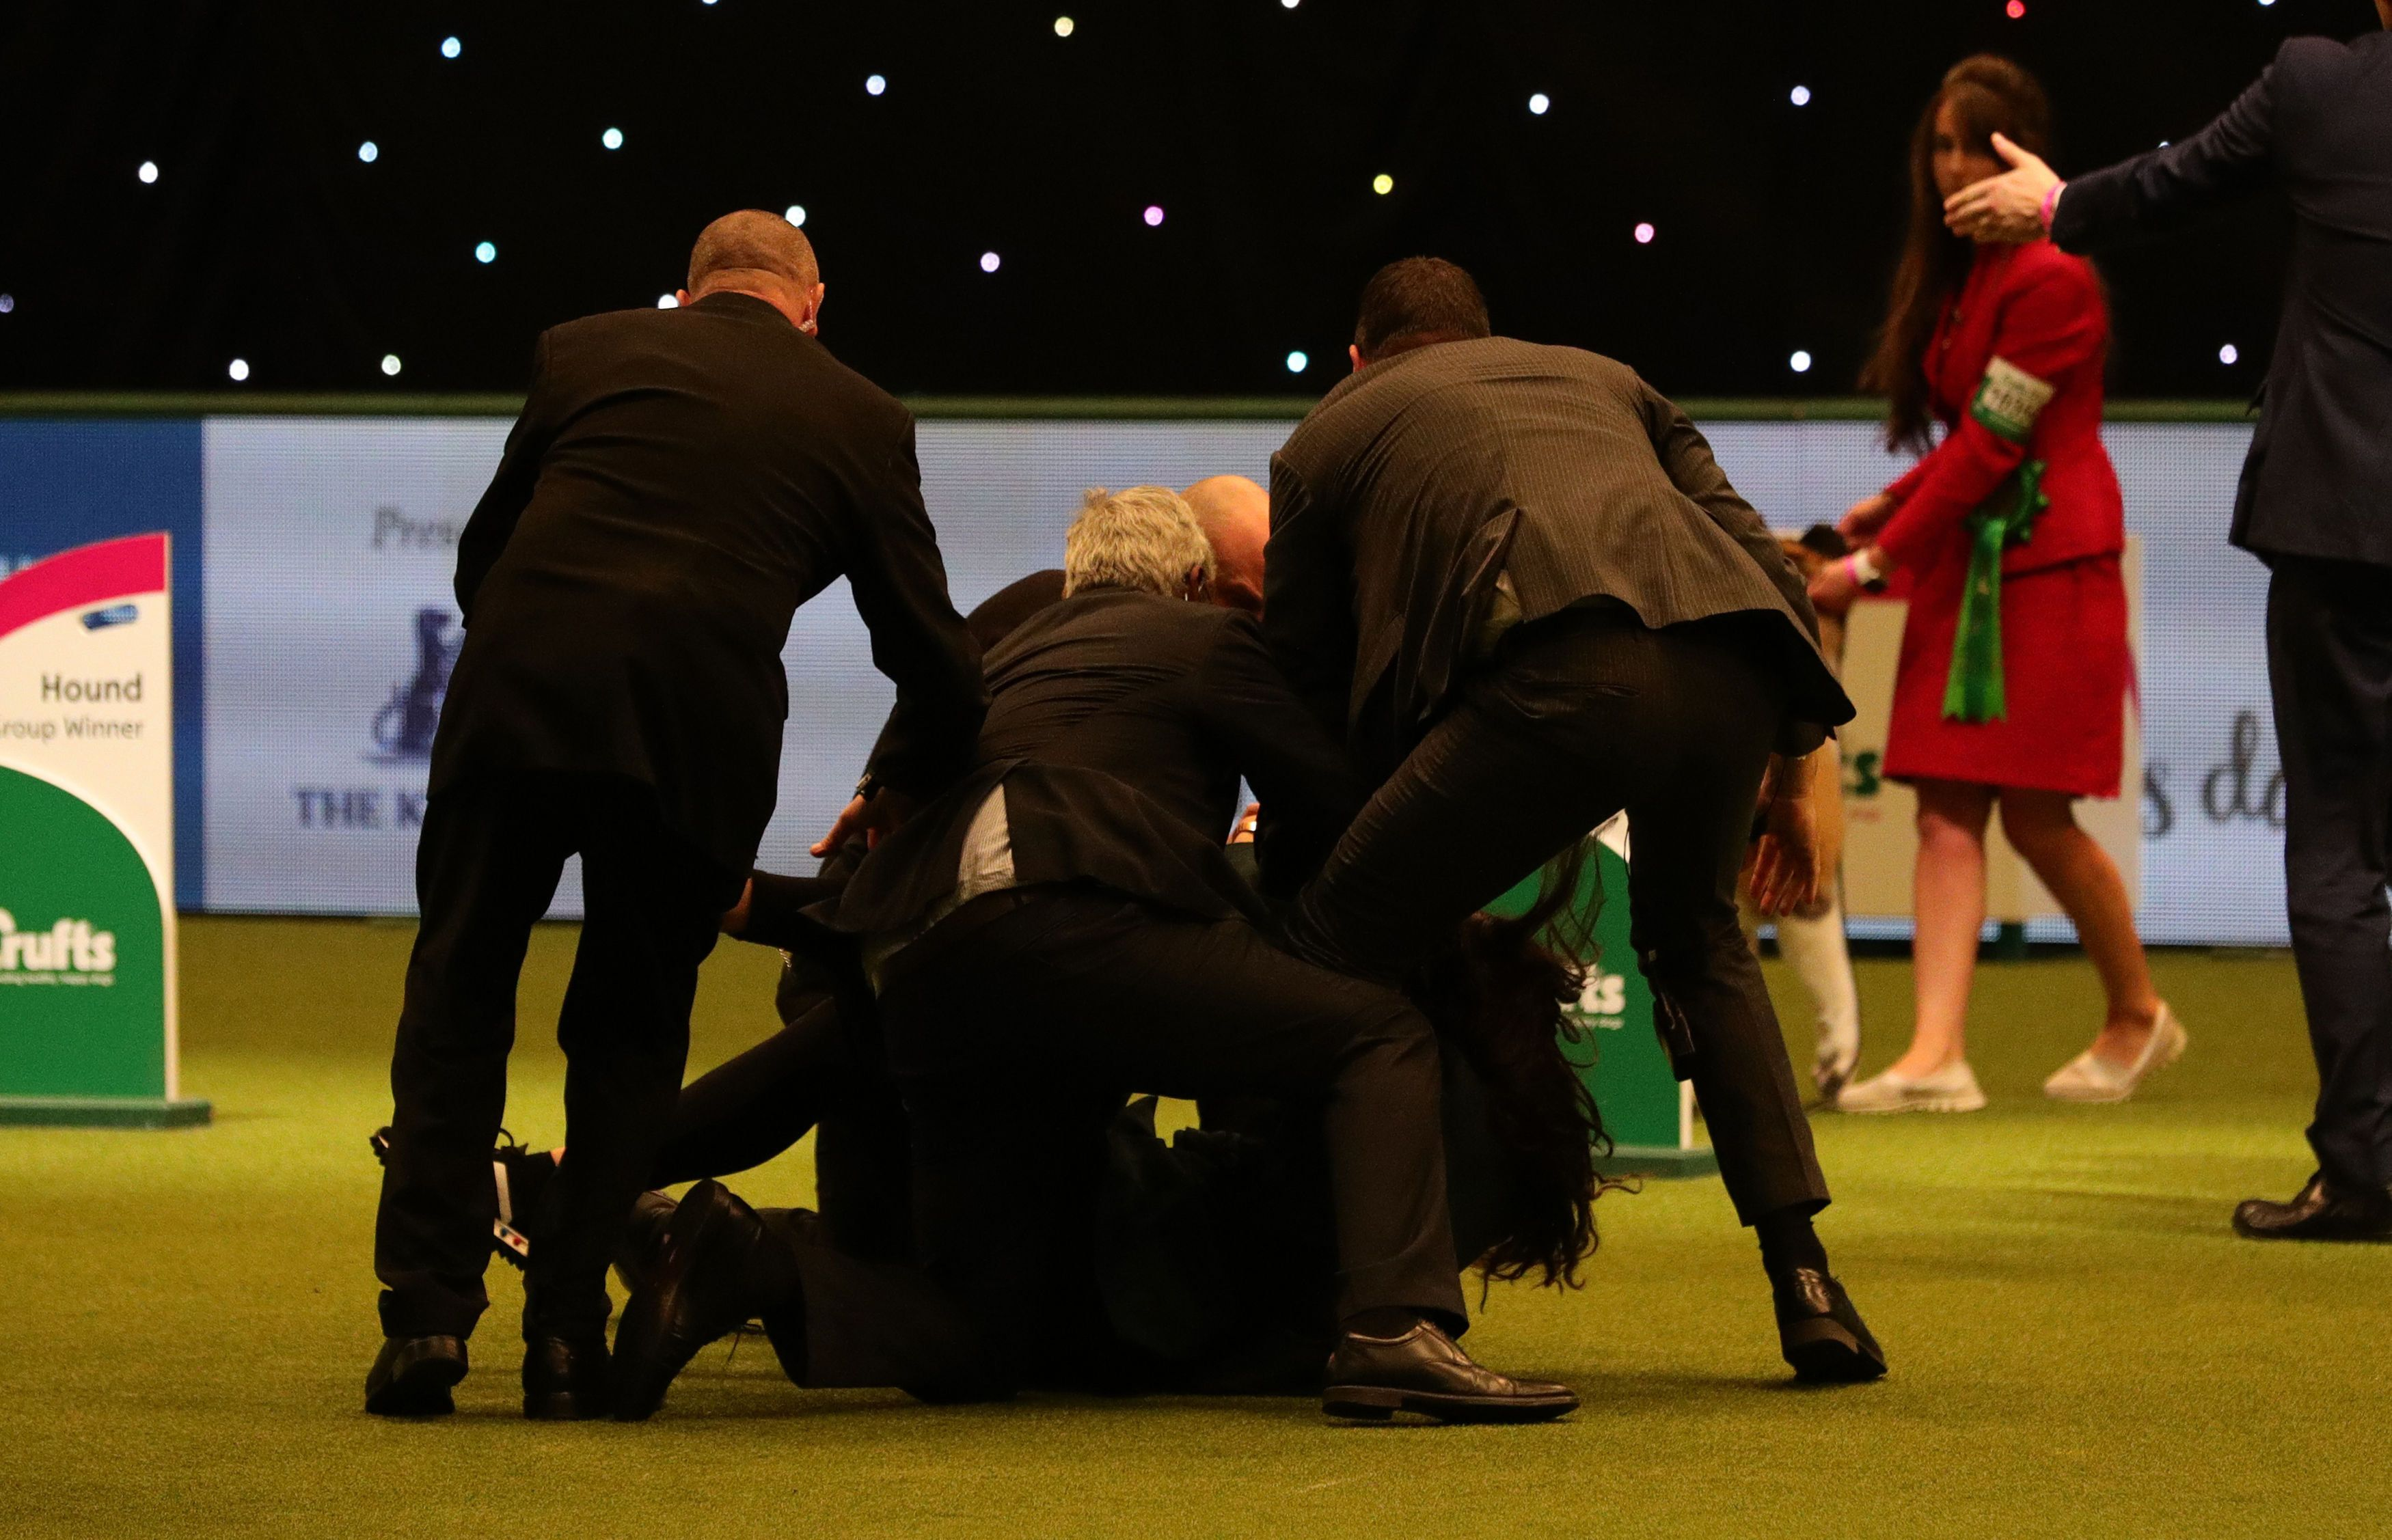 Tease wins Crufts amid protest at the NEC